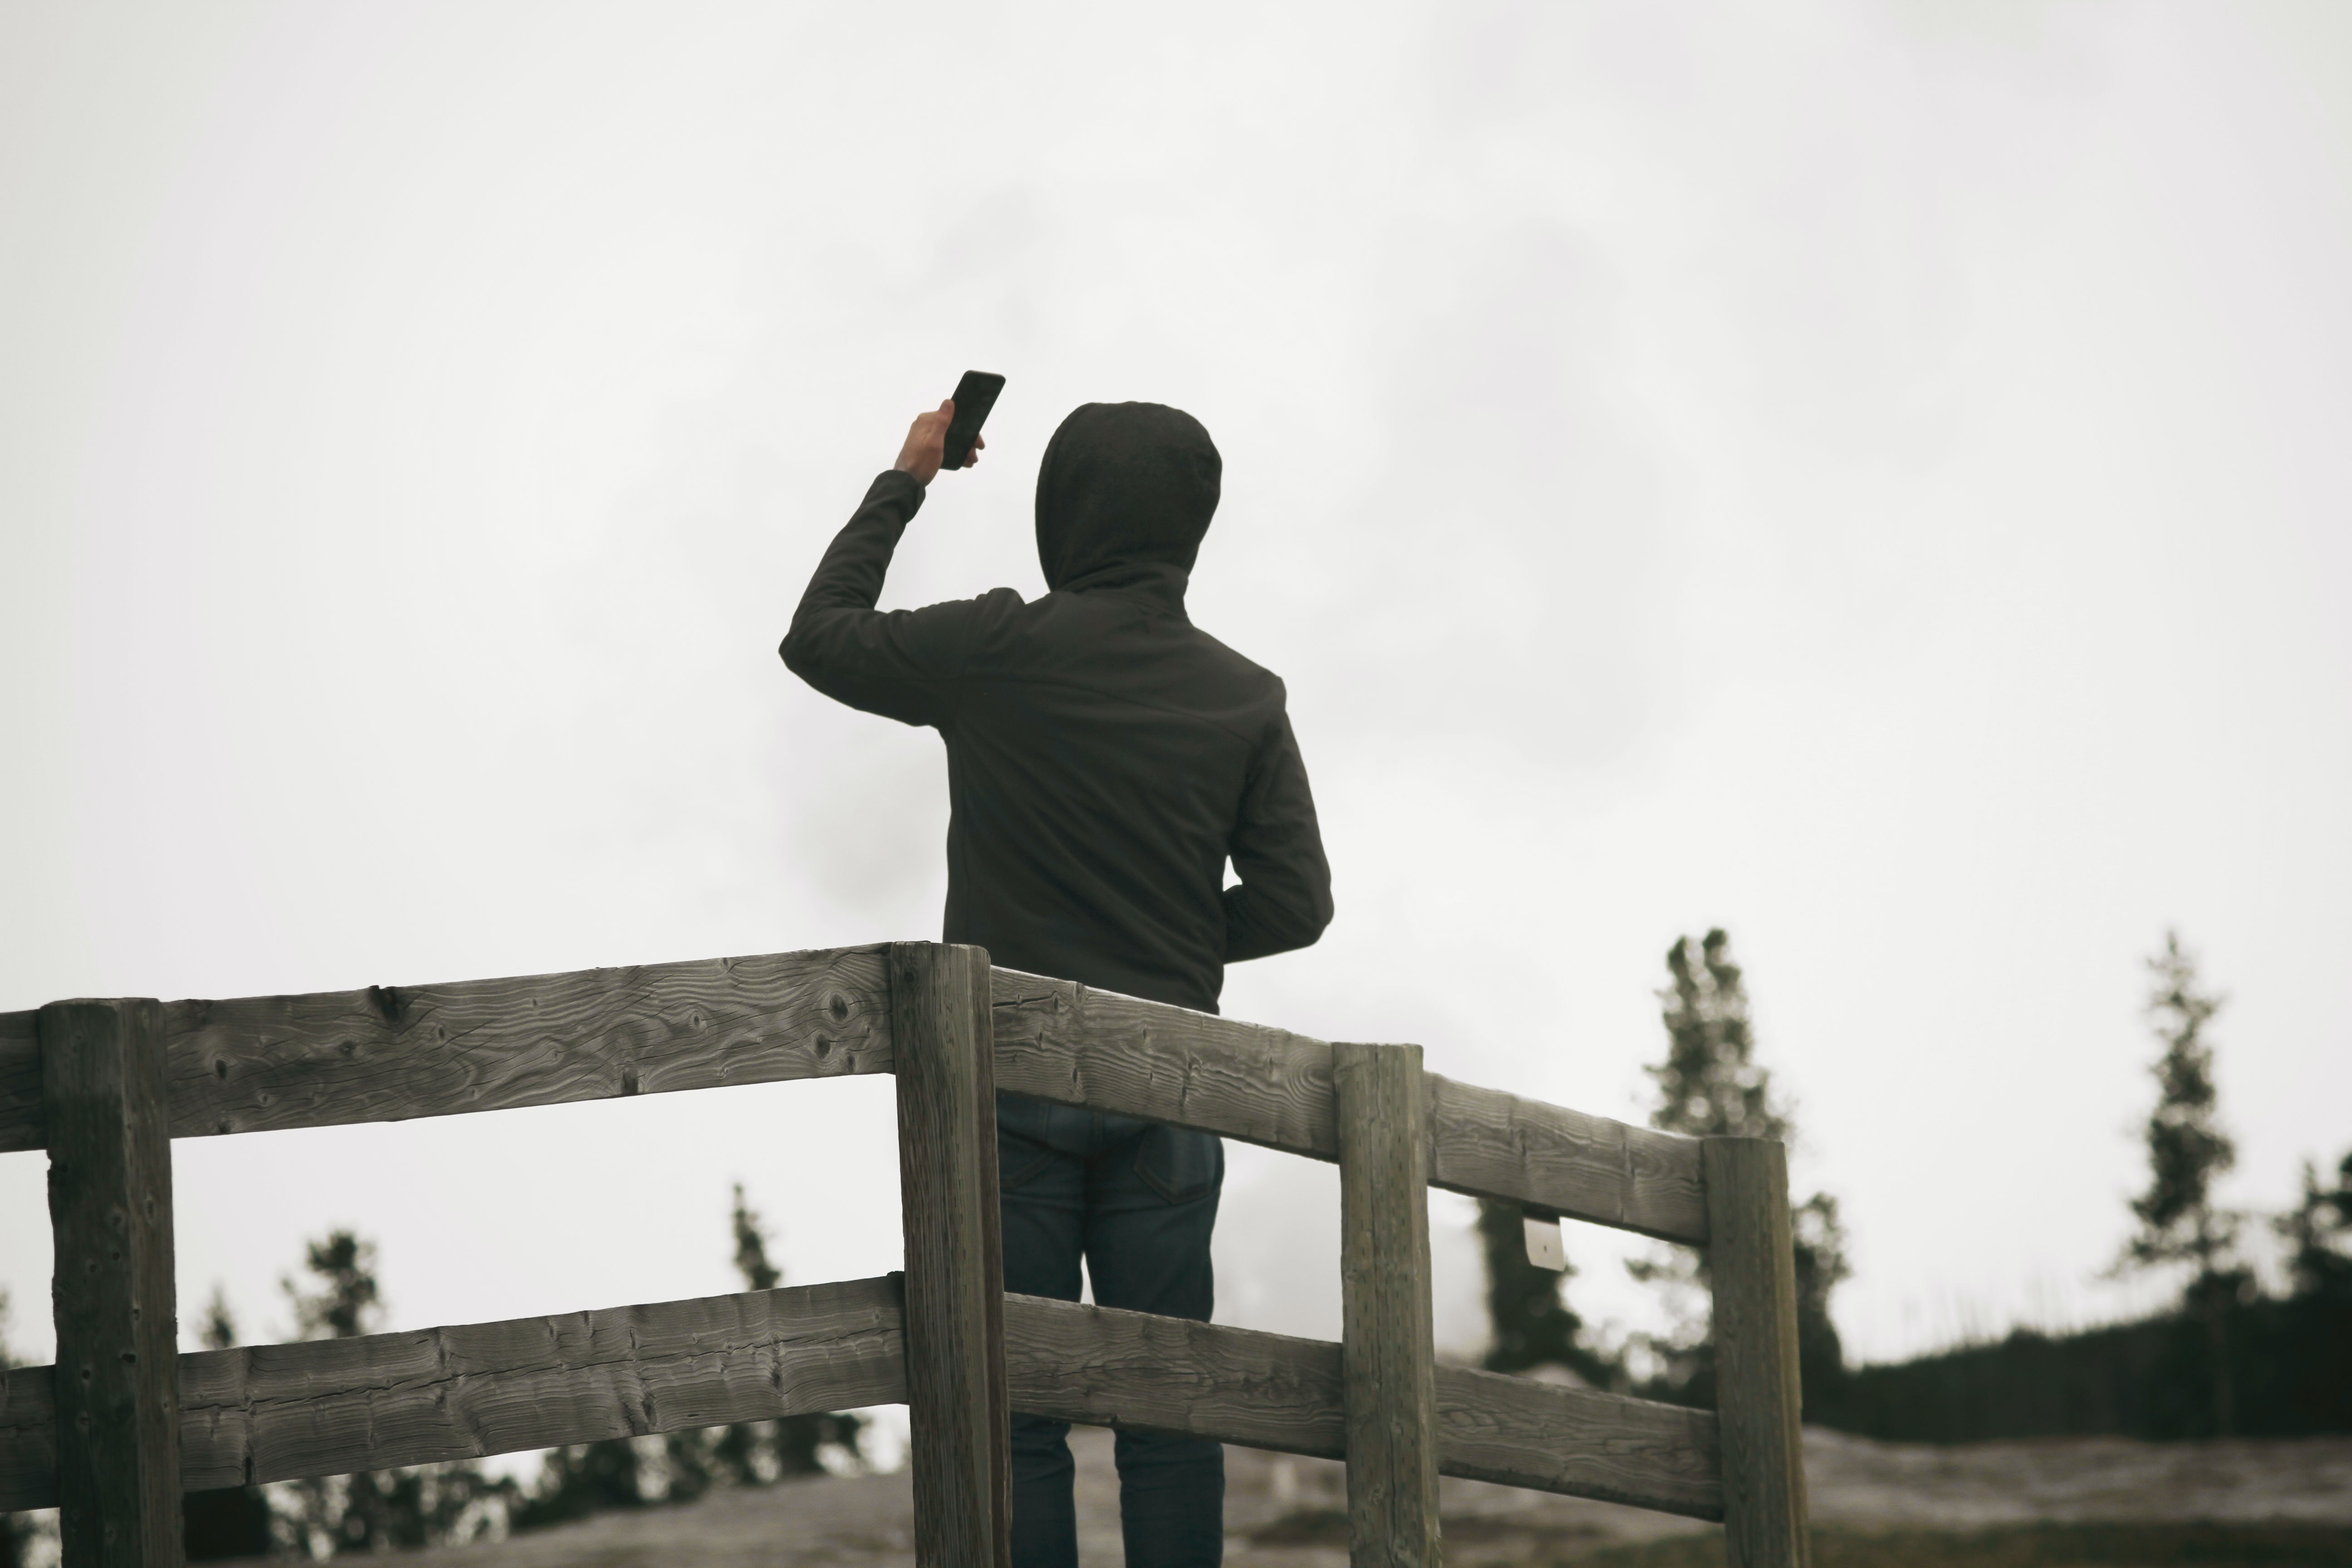 person wearing hoodie holding smartphone